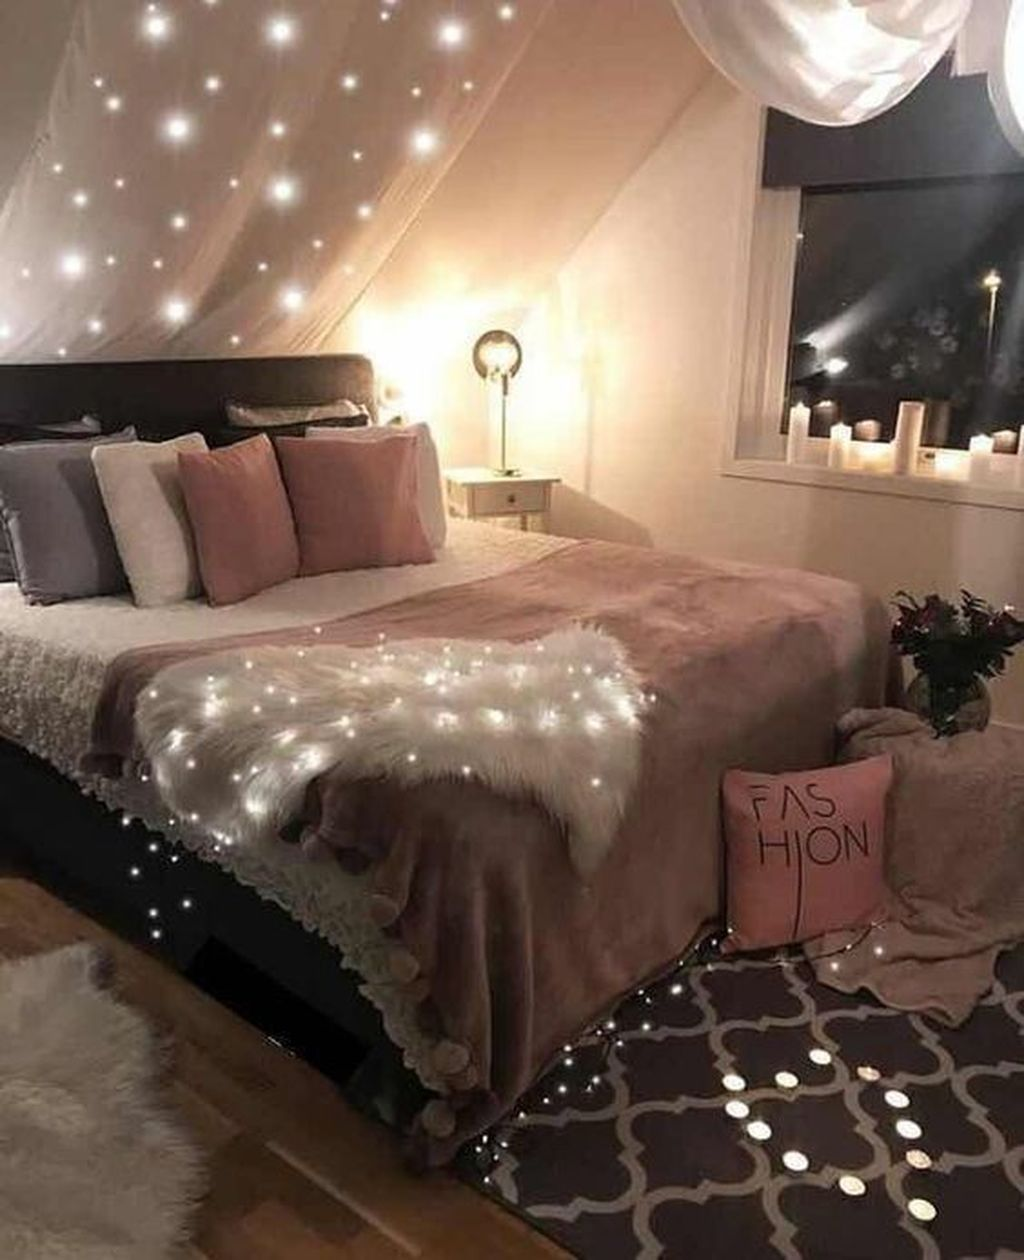 The Best DIY Bedroom Decor Ideas You Have To Try 11